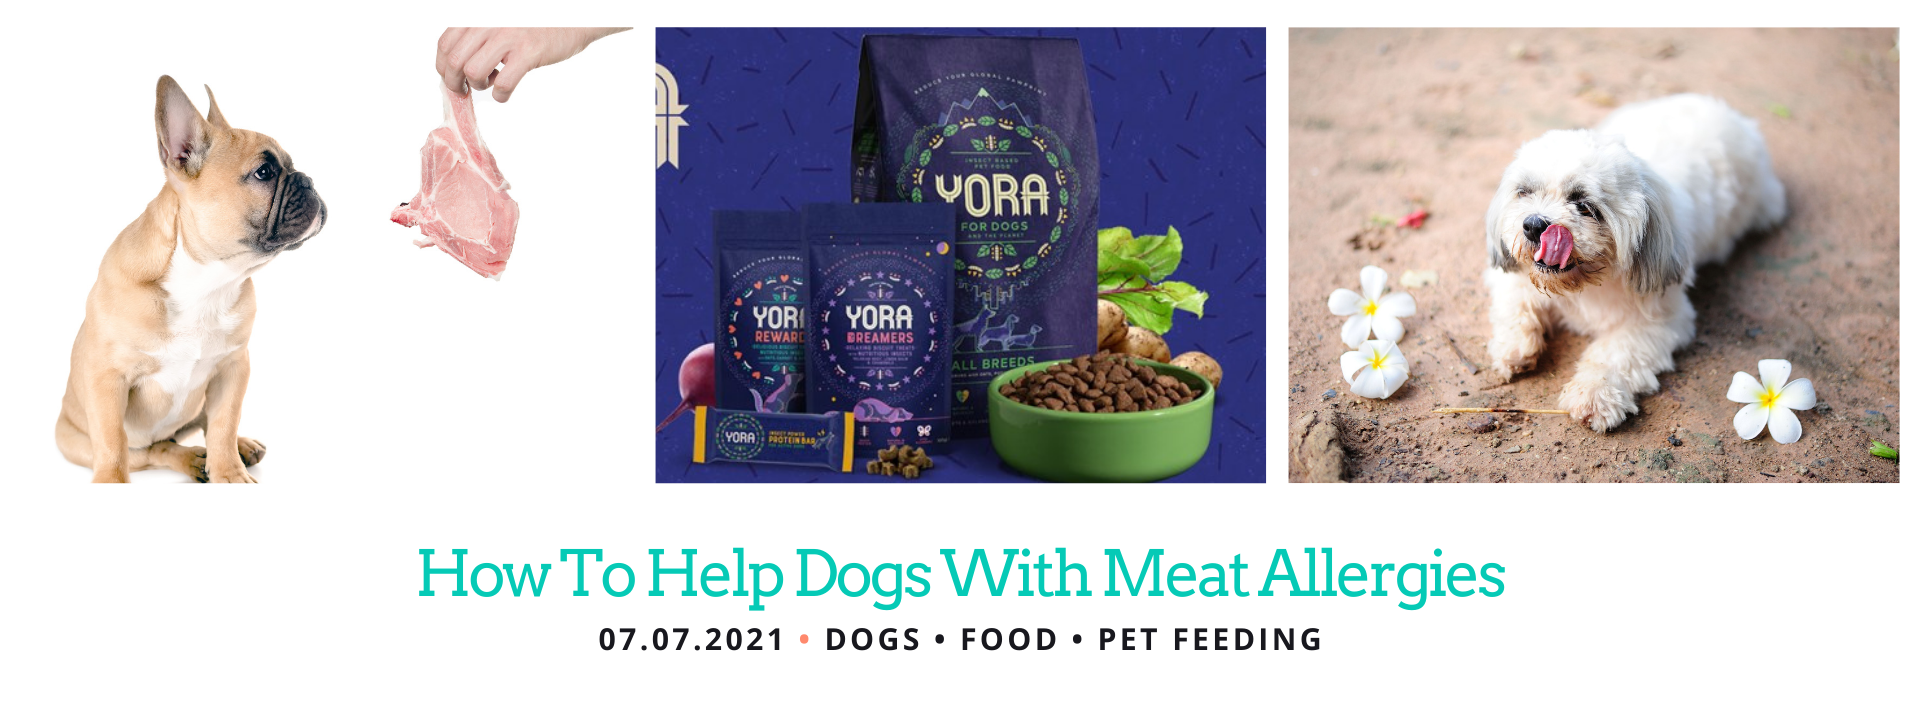 Dogs Allergic to Meat Protein